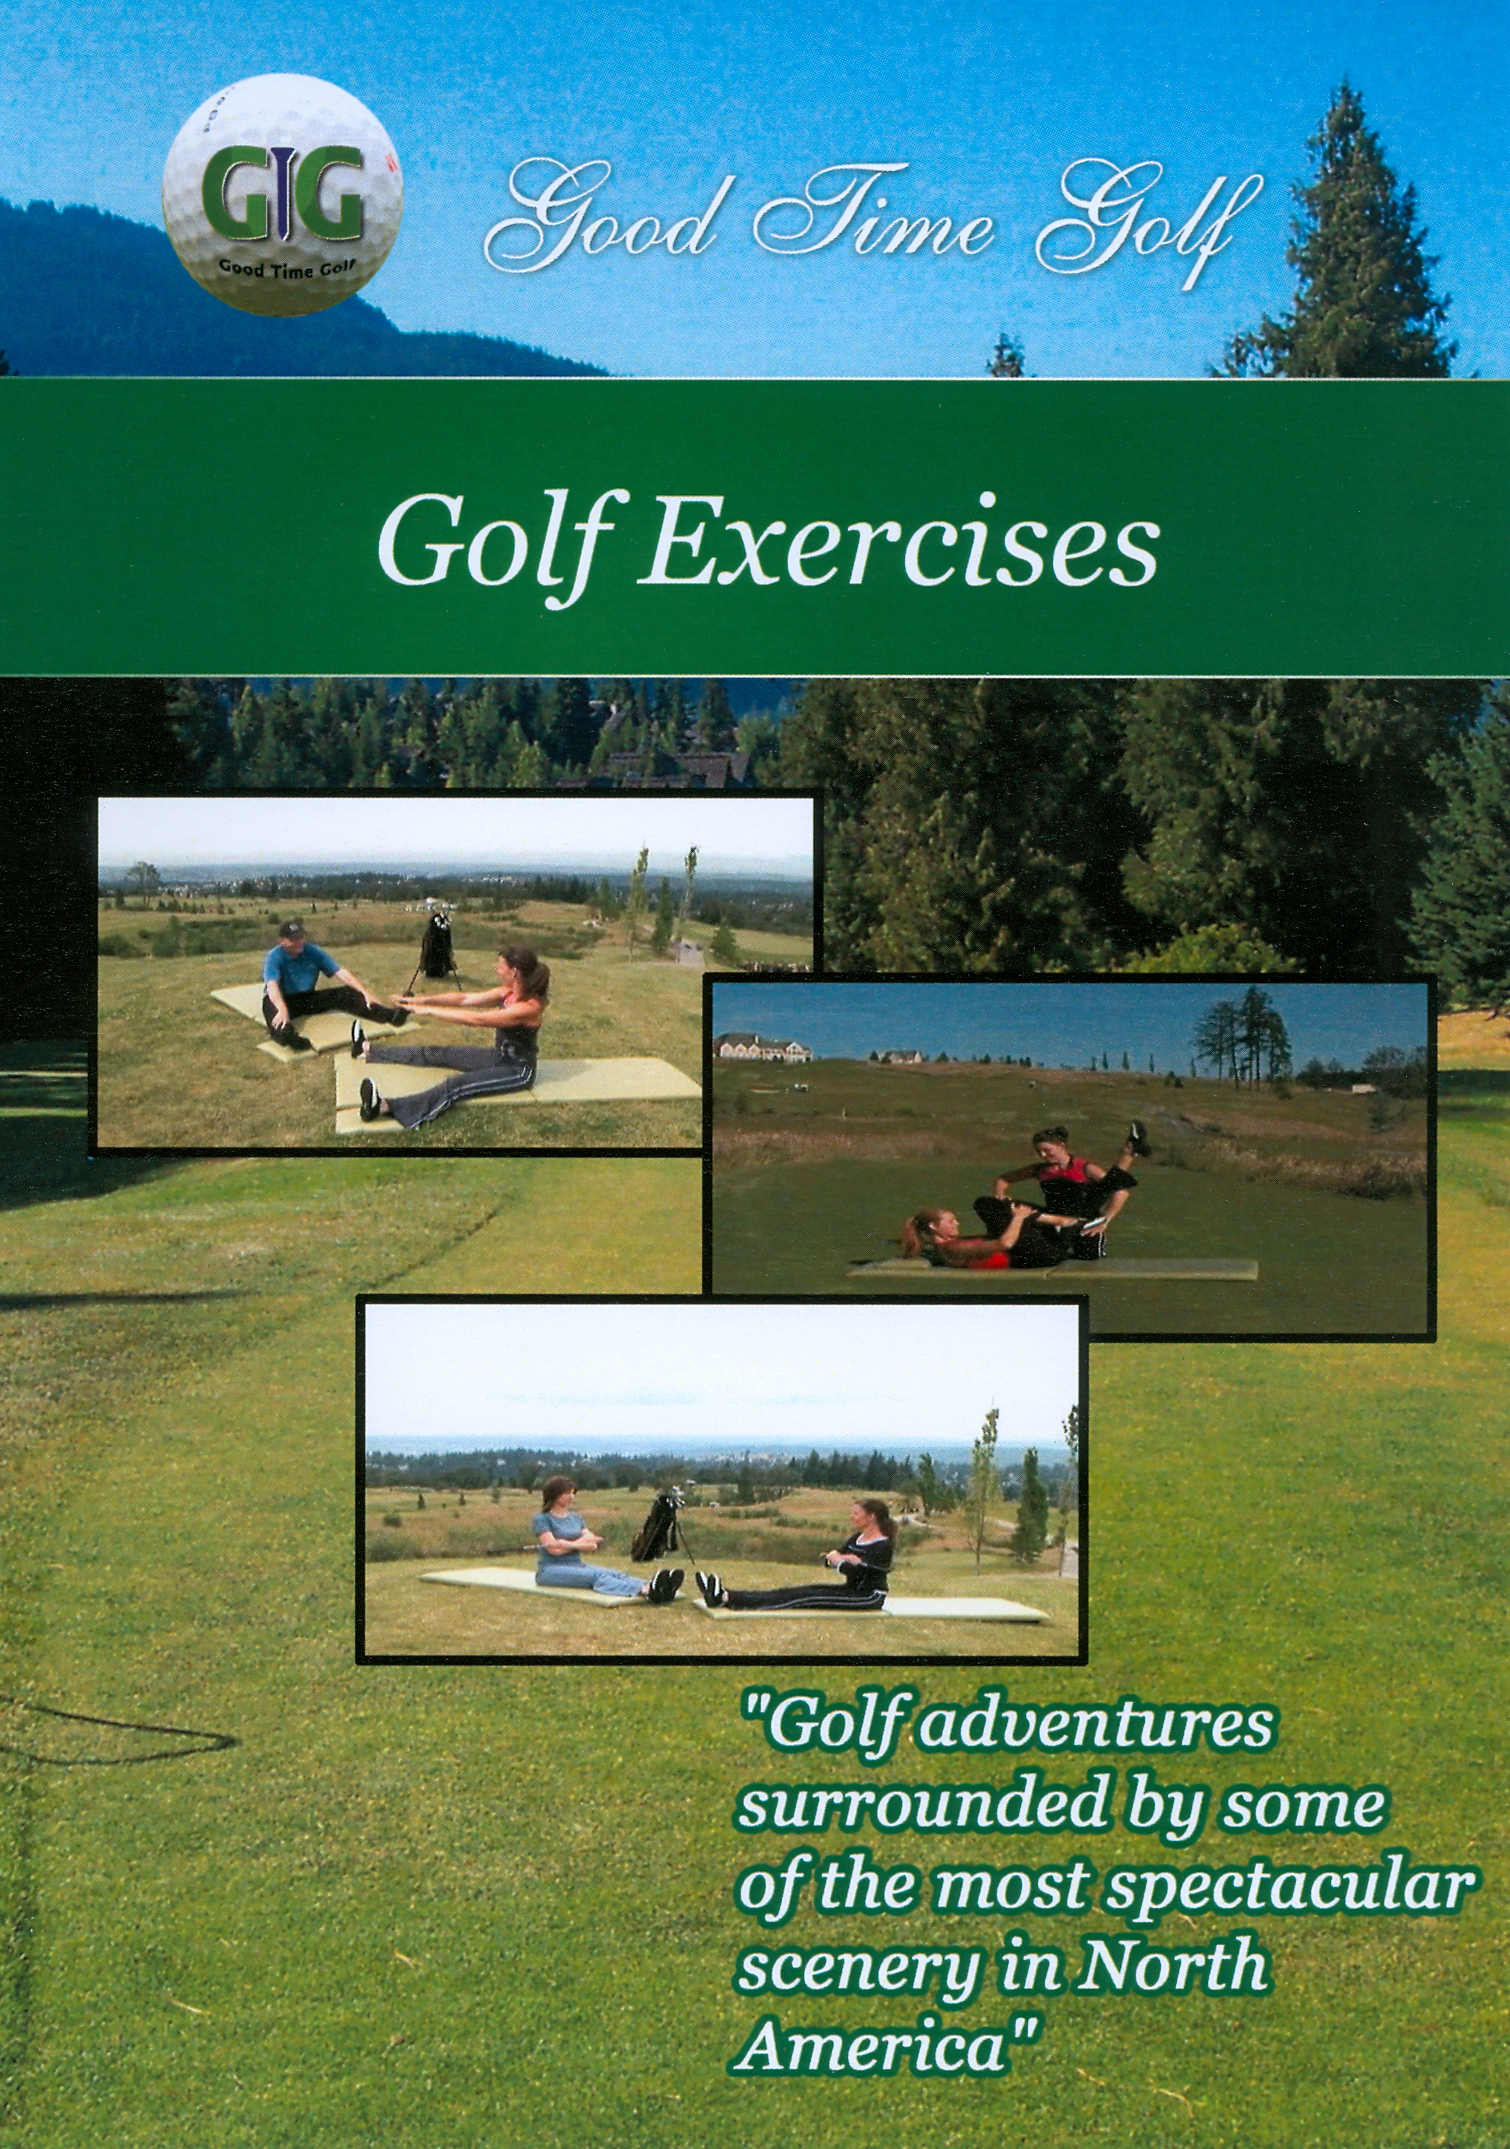 Good Time Golf: Golf Exercises